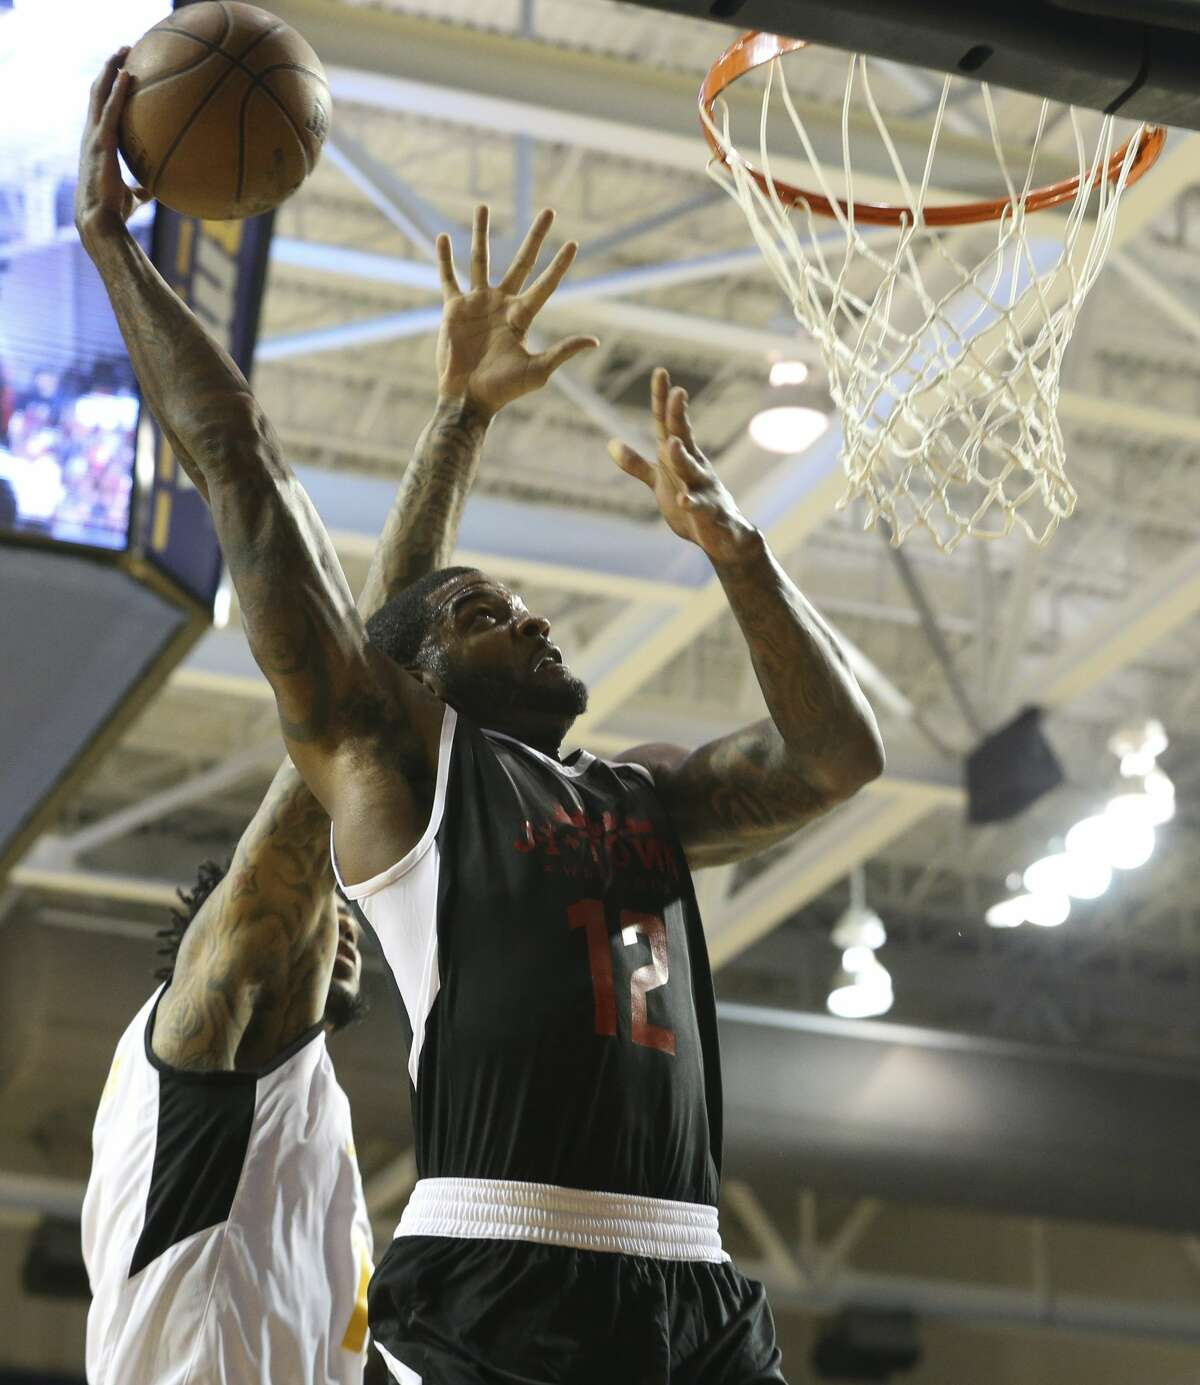 Big Tony's Josh Smith goes for a dunk during the NBA game of James Harden charity basketball tournament against La Flame at Rice University's Tudor Field House Sunday, Aug. 20, 2017, in Houston. ( Yi-Chin Lee / Houston Chronicle )